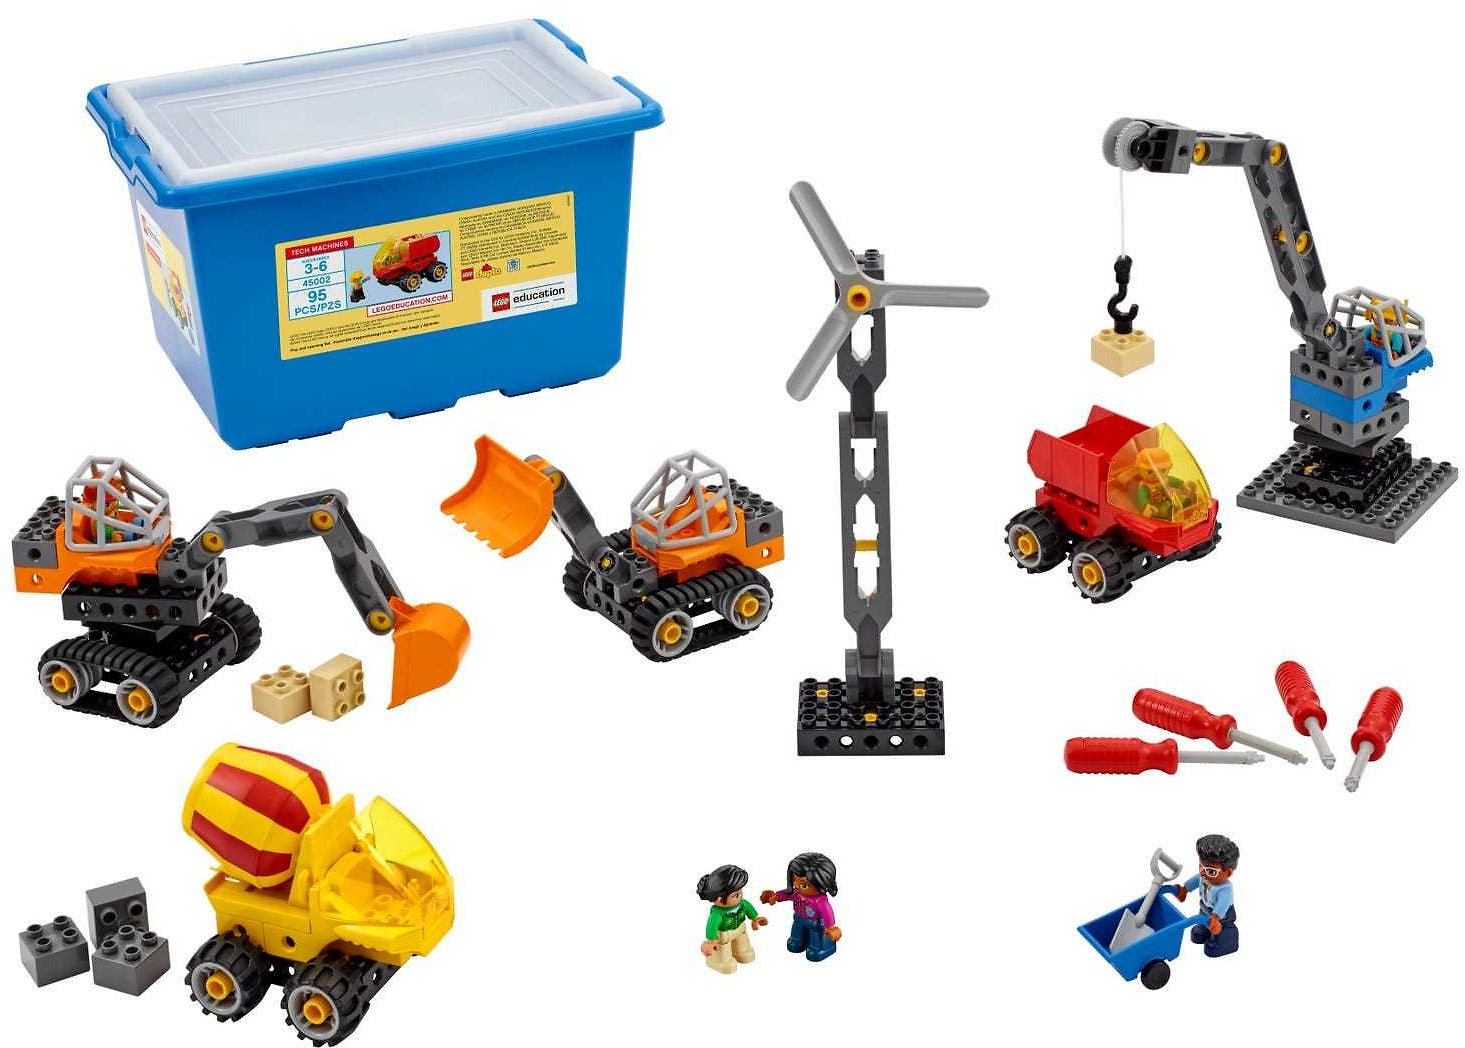 Tech Machines 45002 | LEGO® Education | Buy Online At The Official LEGO® Shop US